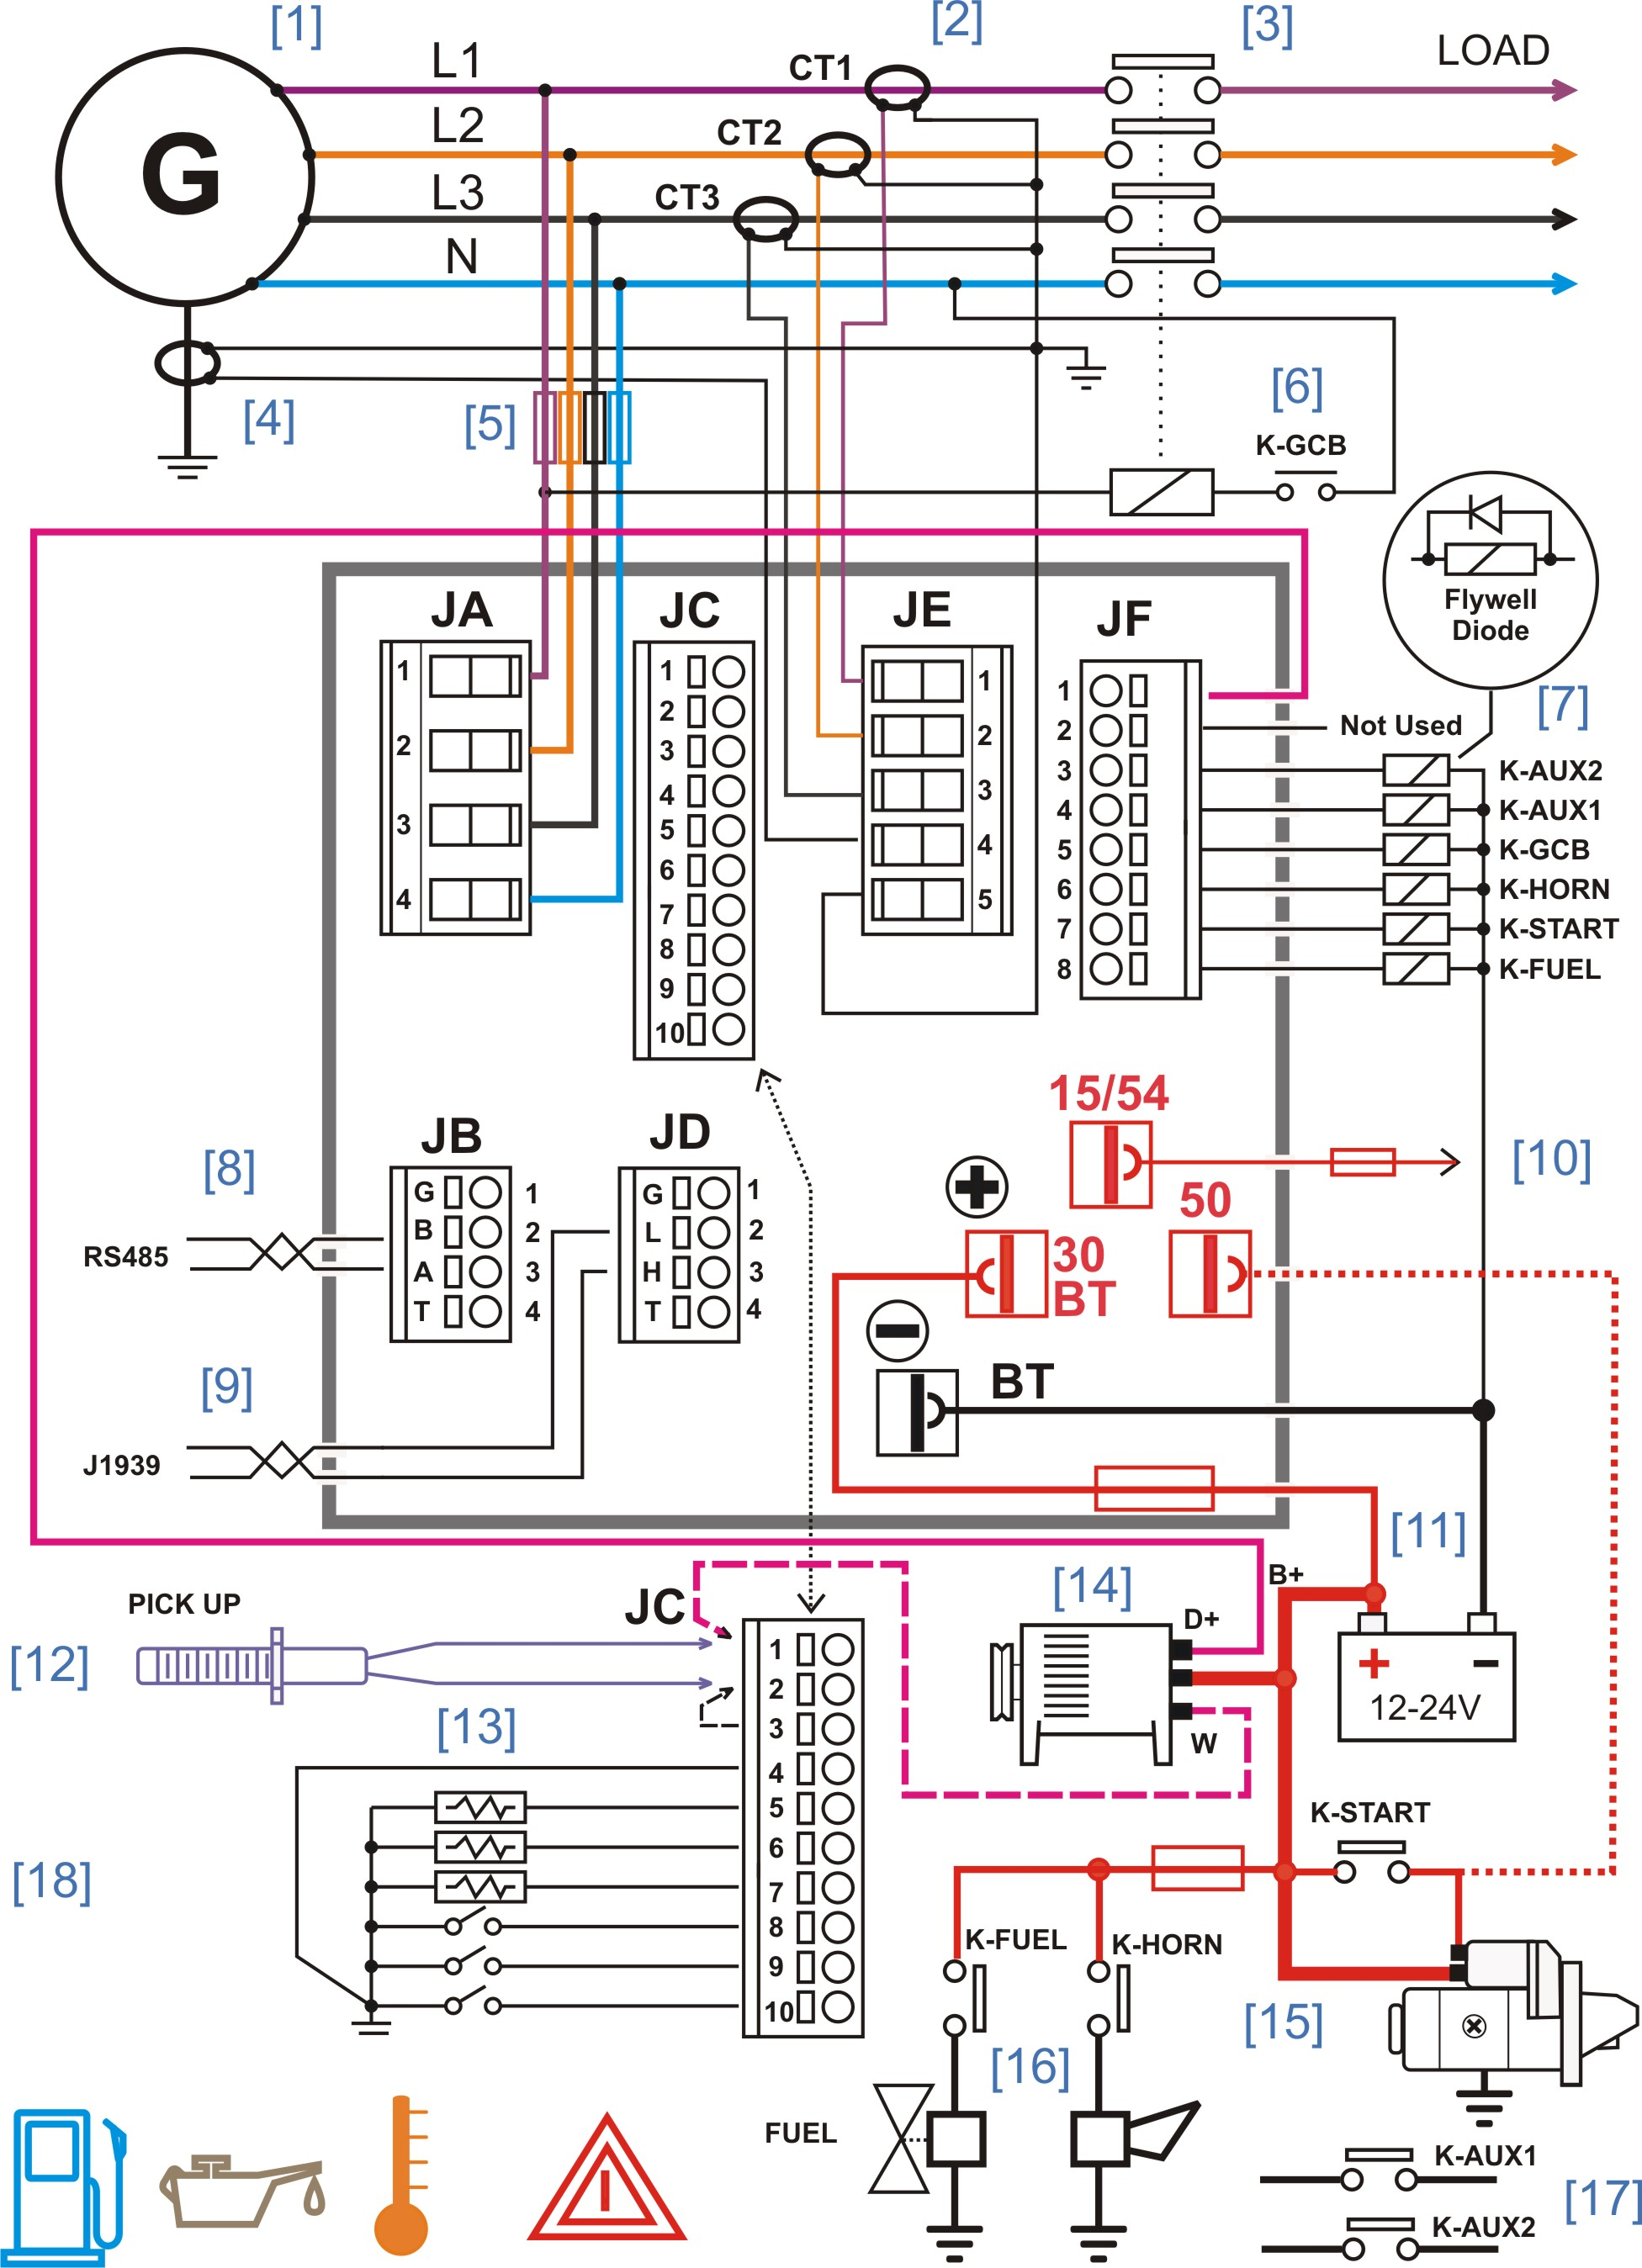 wiring diagram controls for a transfer switch get free wiring Generac 400 Amp Transfer Switch Wiring Diagram wiring diagram for a generac transfer switch the wiring diagram, wiring diagram generac 400 amp transfer switch wiring diagram